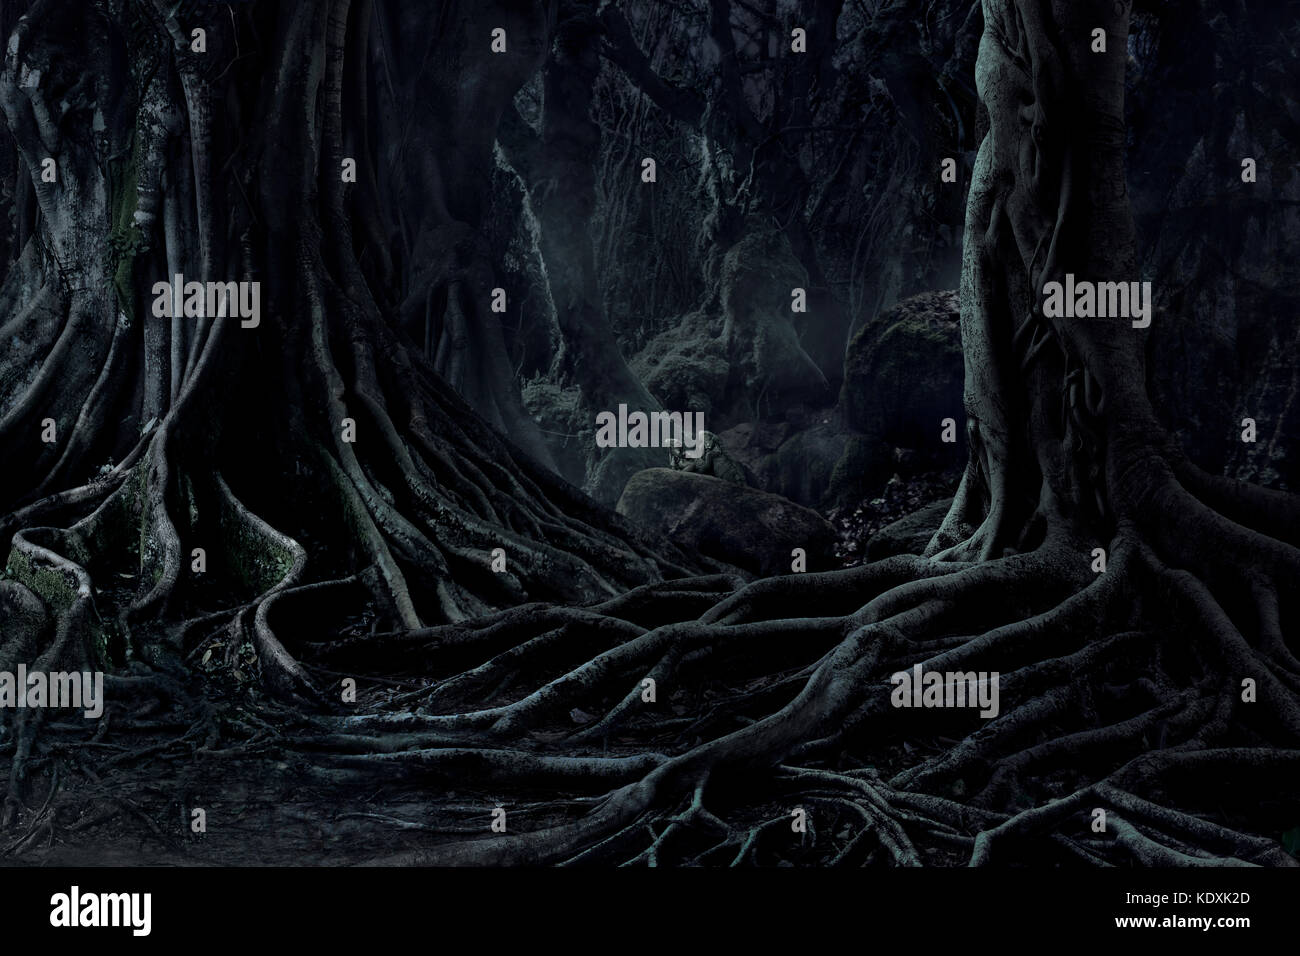 Spooky Halloween dead mysterious forest creepy trees with twisted roots and two lizard on misty night forest. Scary - Stock Image